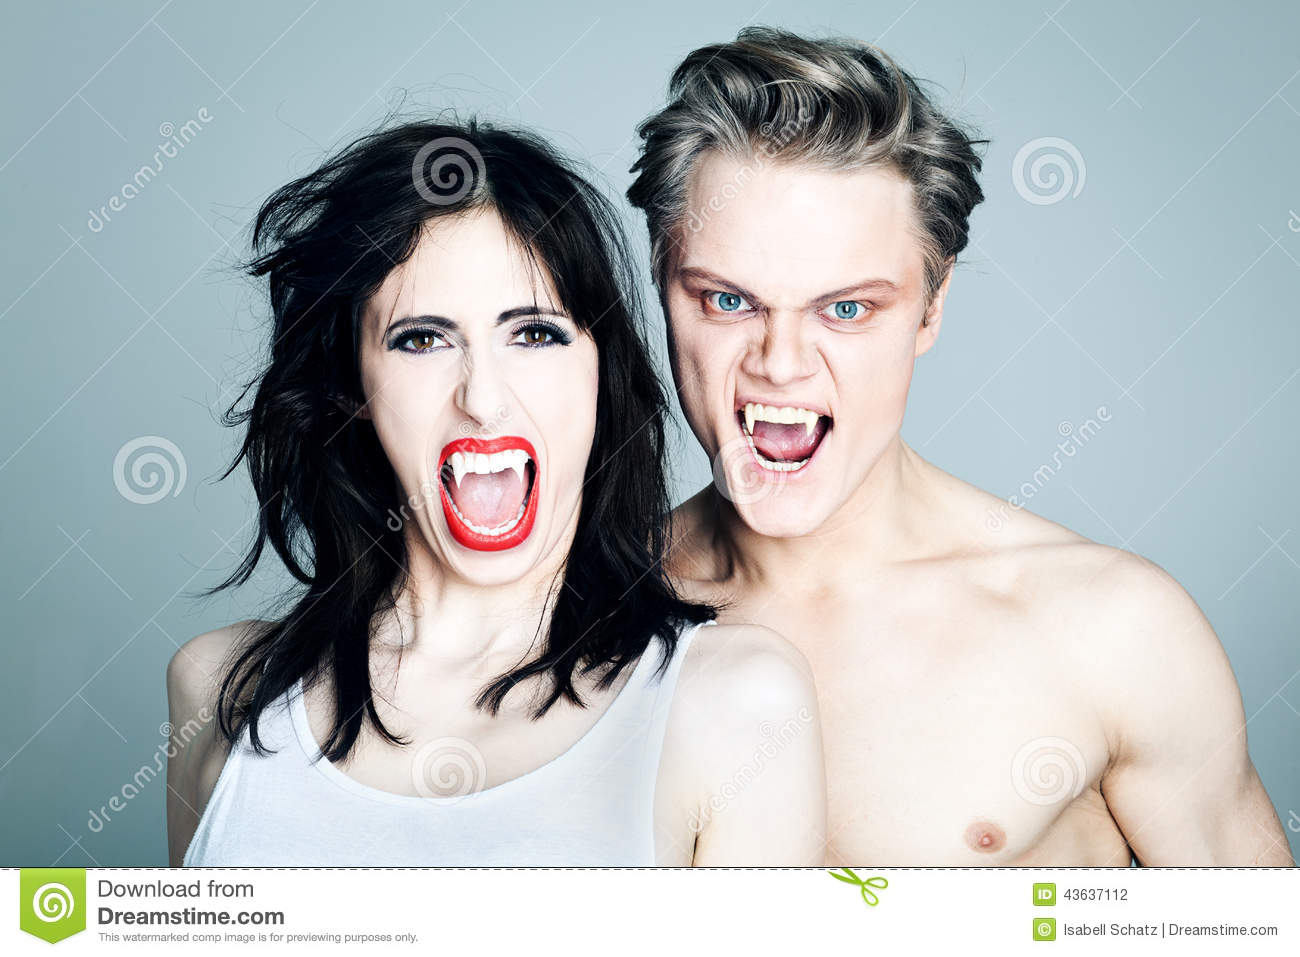 Two screaming Vampires showing their fangs